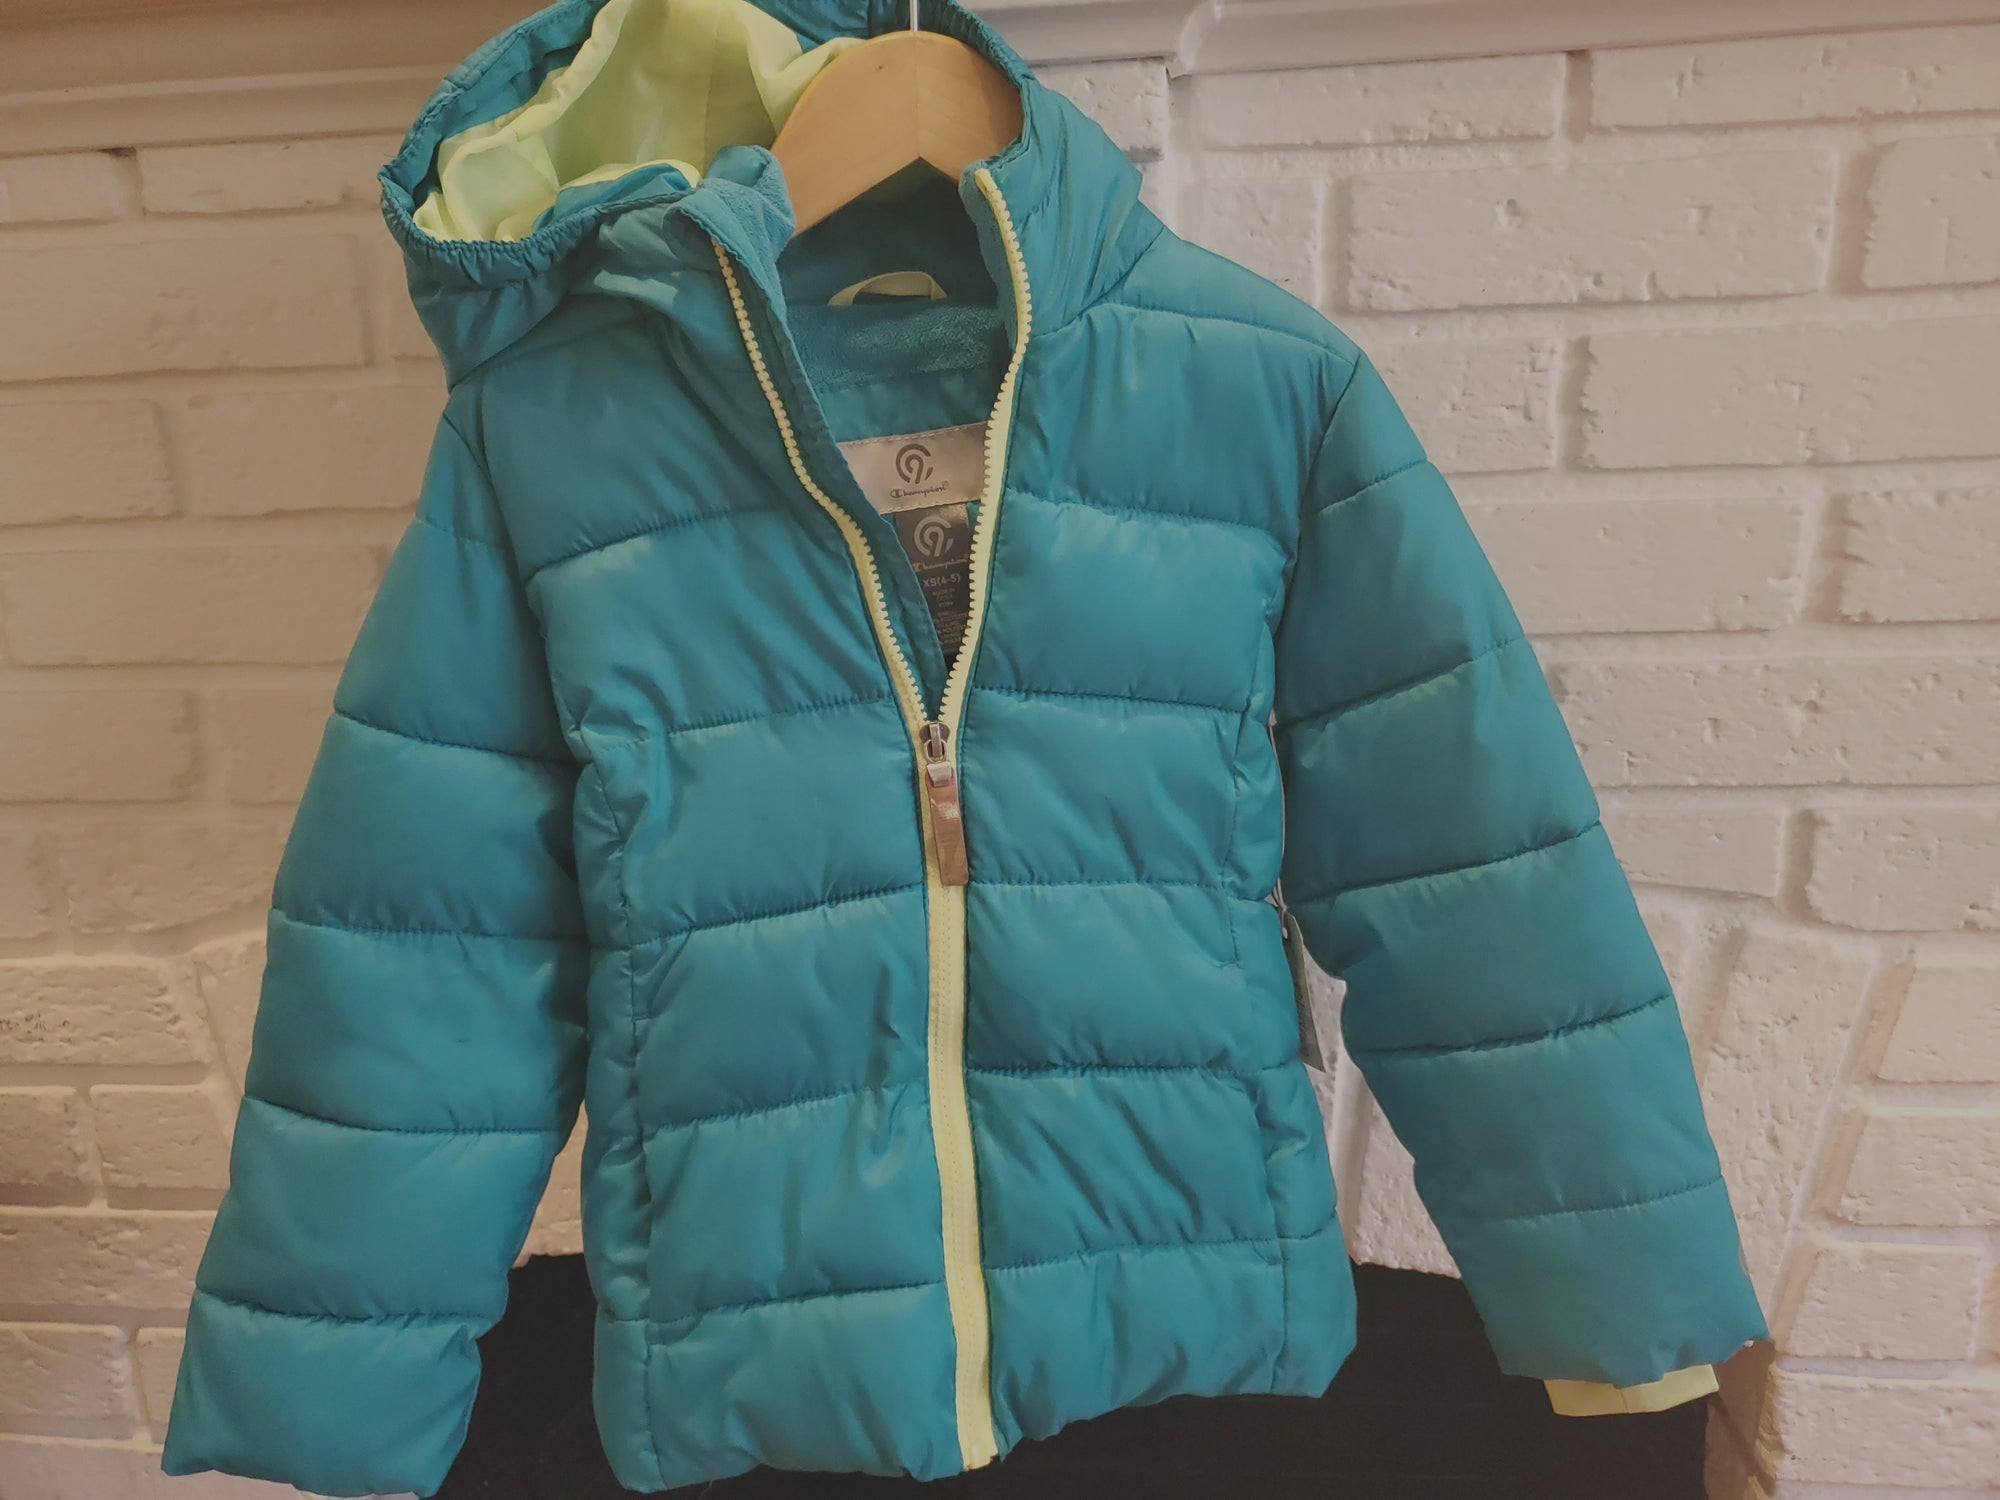 Resale 4-5T (XS) Champion Hooded Puffer Jacket - Teal w/ Yellow Trim